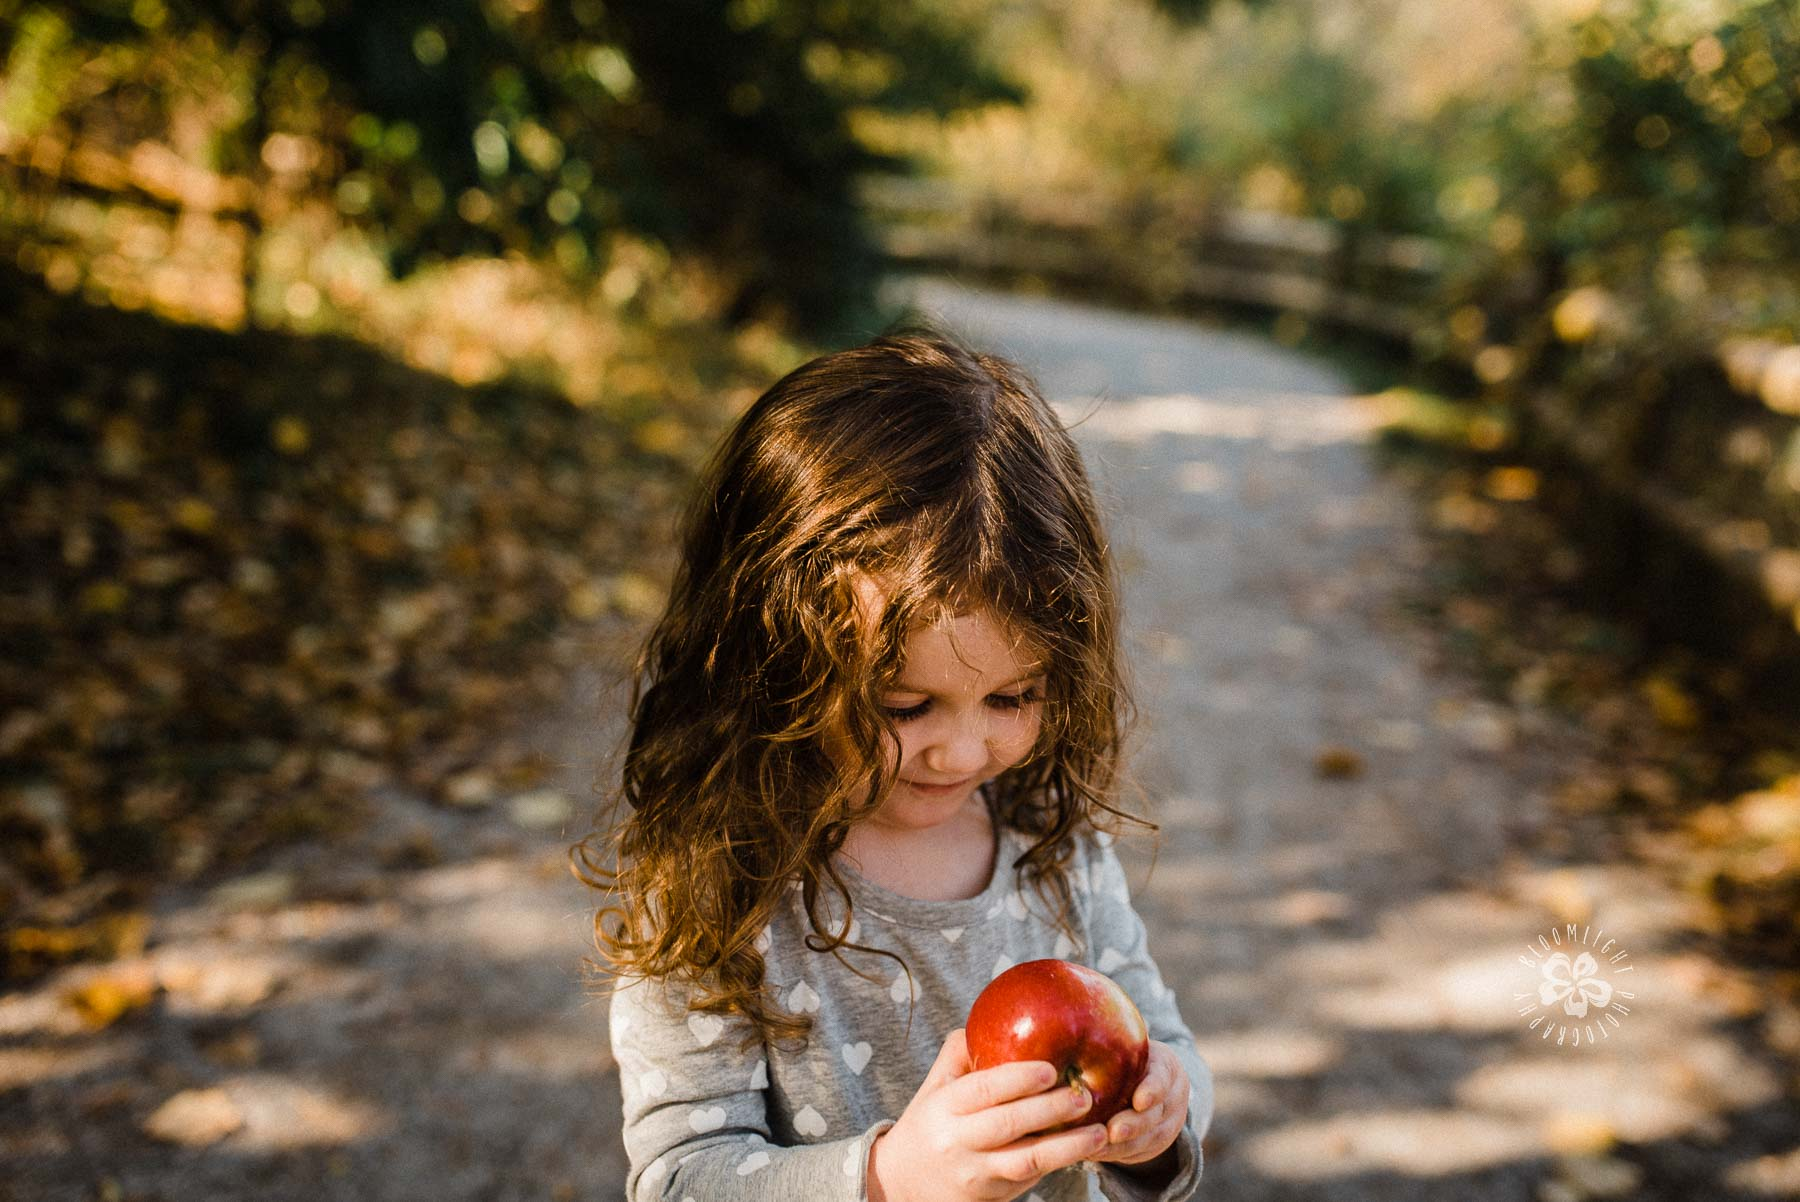 Sweet little girl looking at her apple in her hand while standing in a beautiful trail of Fall season